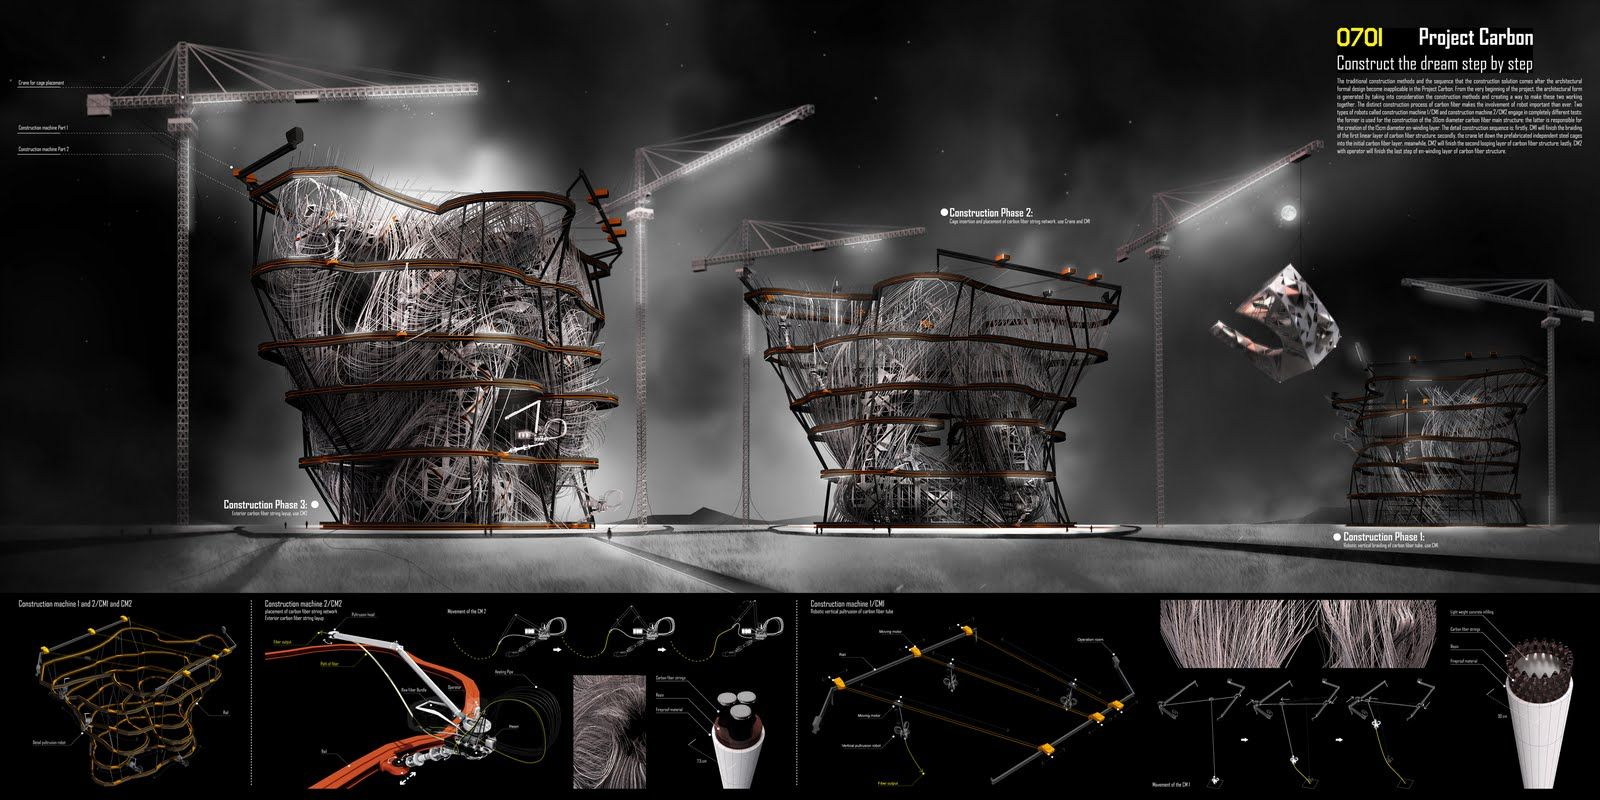 Sci arc yaohua wang project design de diagrams pinterest sci arc yaohua wang project malvernweather Image collections